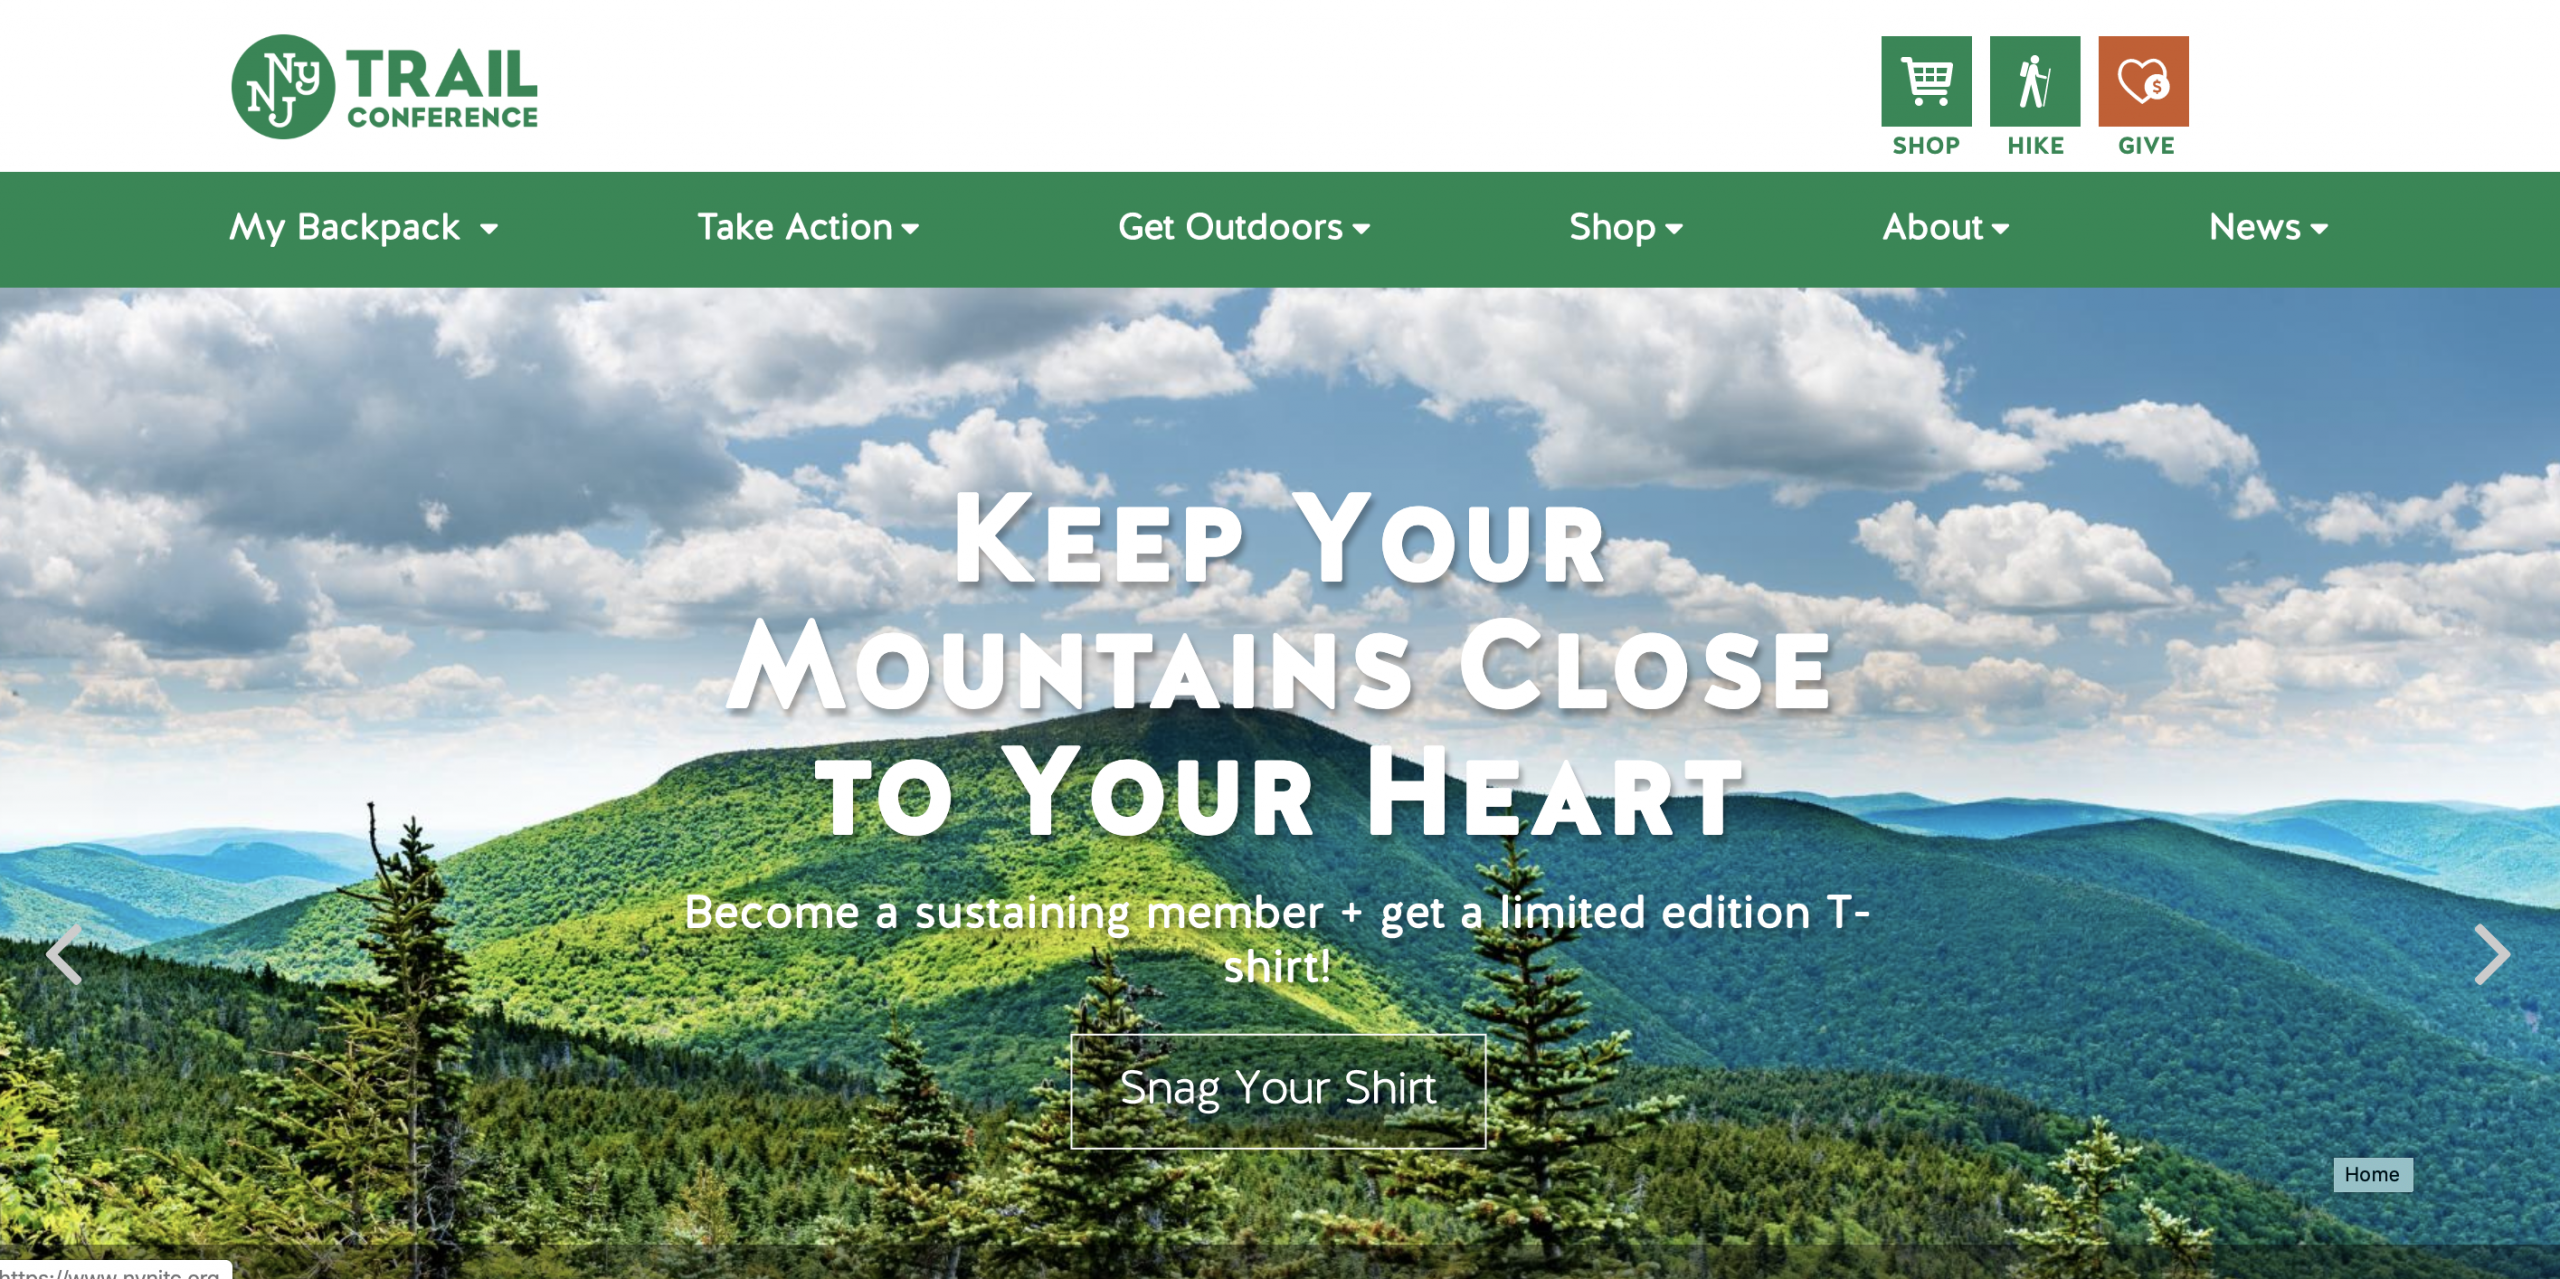 New York-New Jersey Trails Conference Website